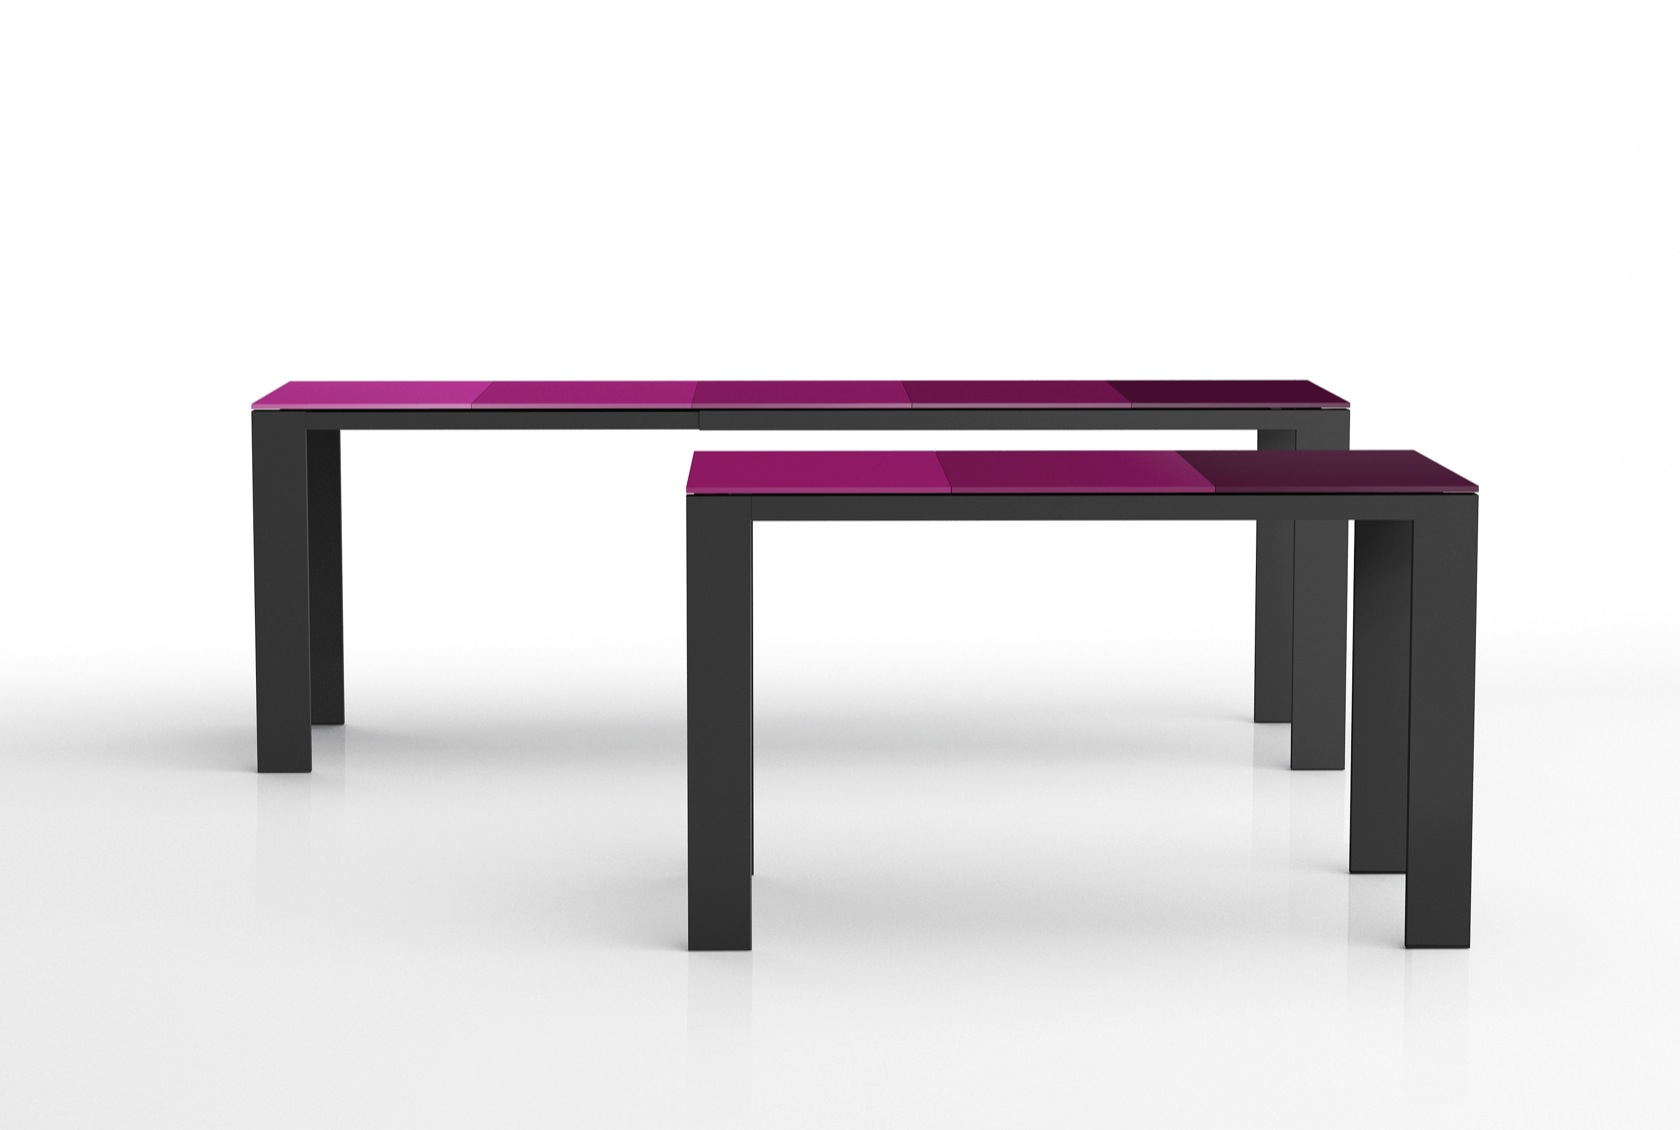 Fade Out extendable table